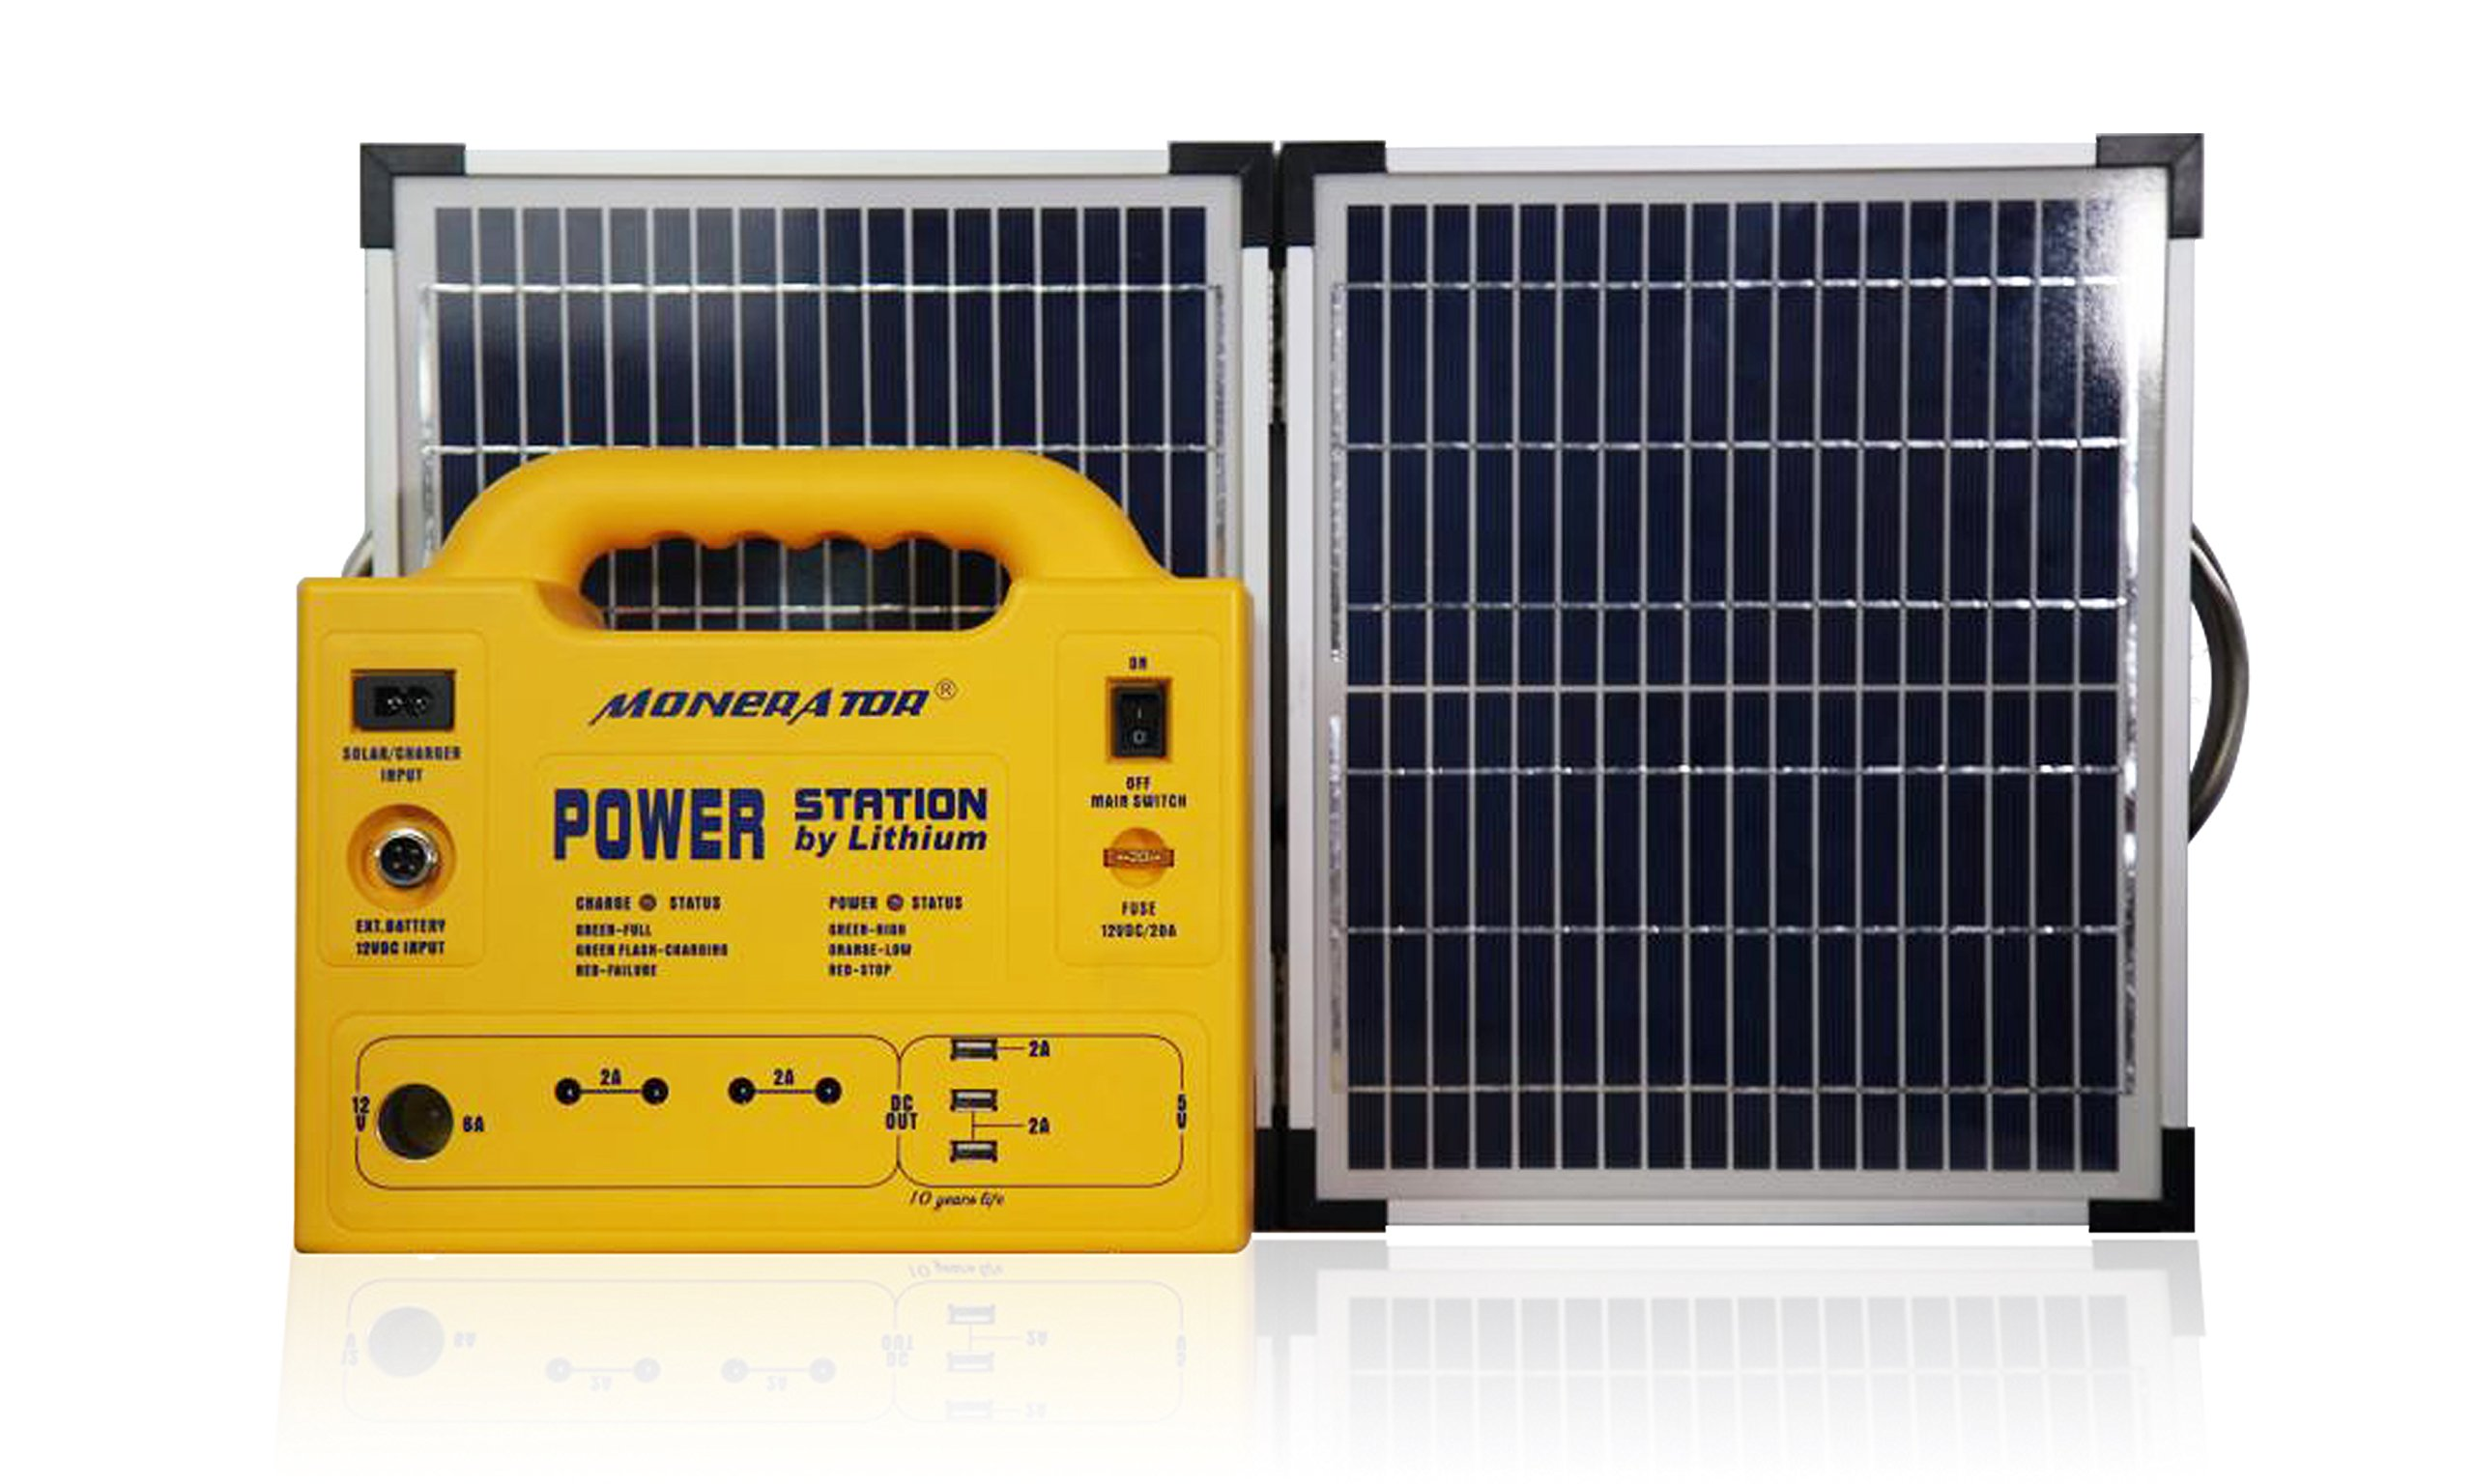 Portable Solar Generator Power Station 256 Wh/250 W with Dual 12V DC/110V AC Output, USB, Lamps & Cigarette Lighter Ports Ideal for Emergency, Camping & Outdoor Activities – Monerator Gusto 20